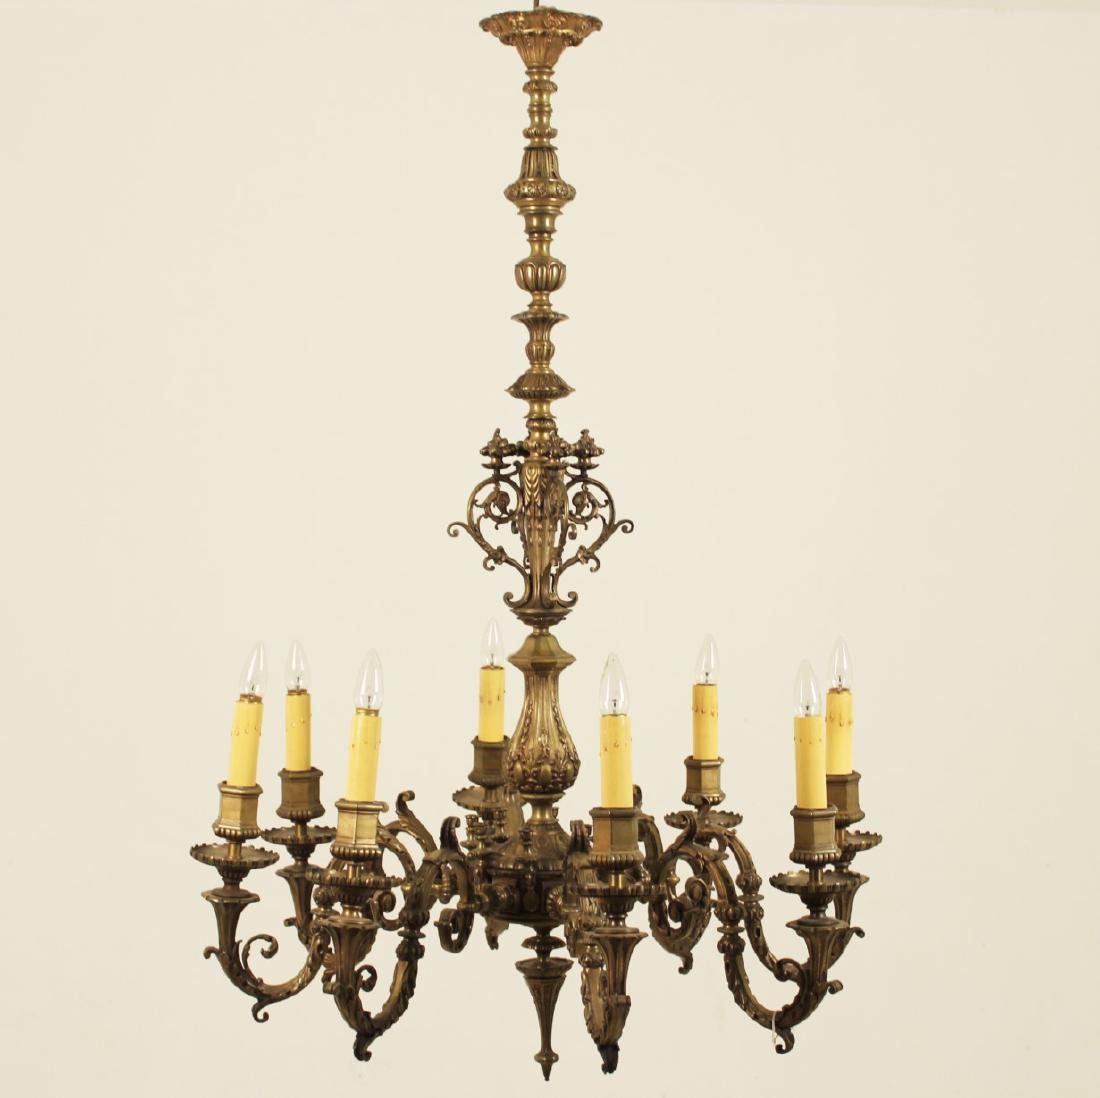 ANTIQUE FRENCH EMBOSSED BRONZE CHANDELIER